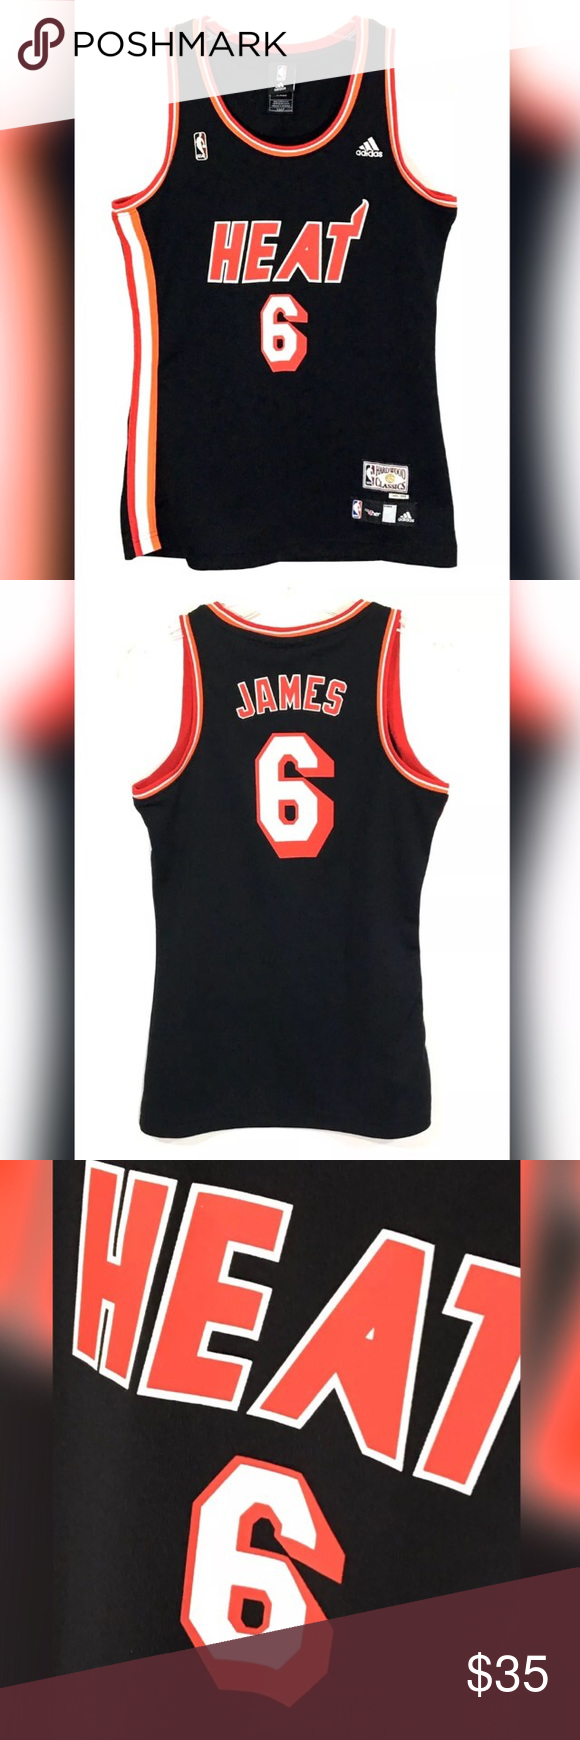 Lebron James Miami Heat Throwback Jersey Hardwood Lebron James Miami Heat  Throwback Jersey Hardwood Classics NBA 4 Her Women s S Pit to pit  16